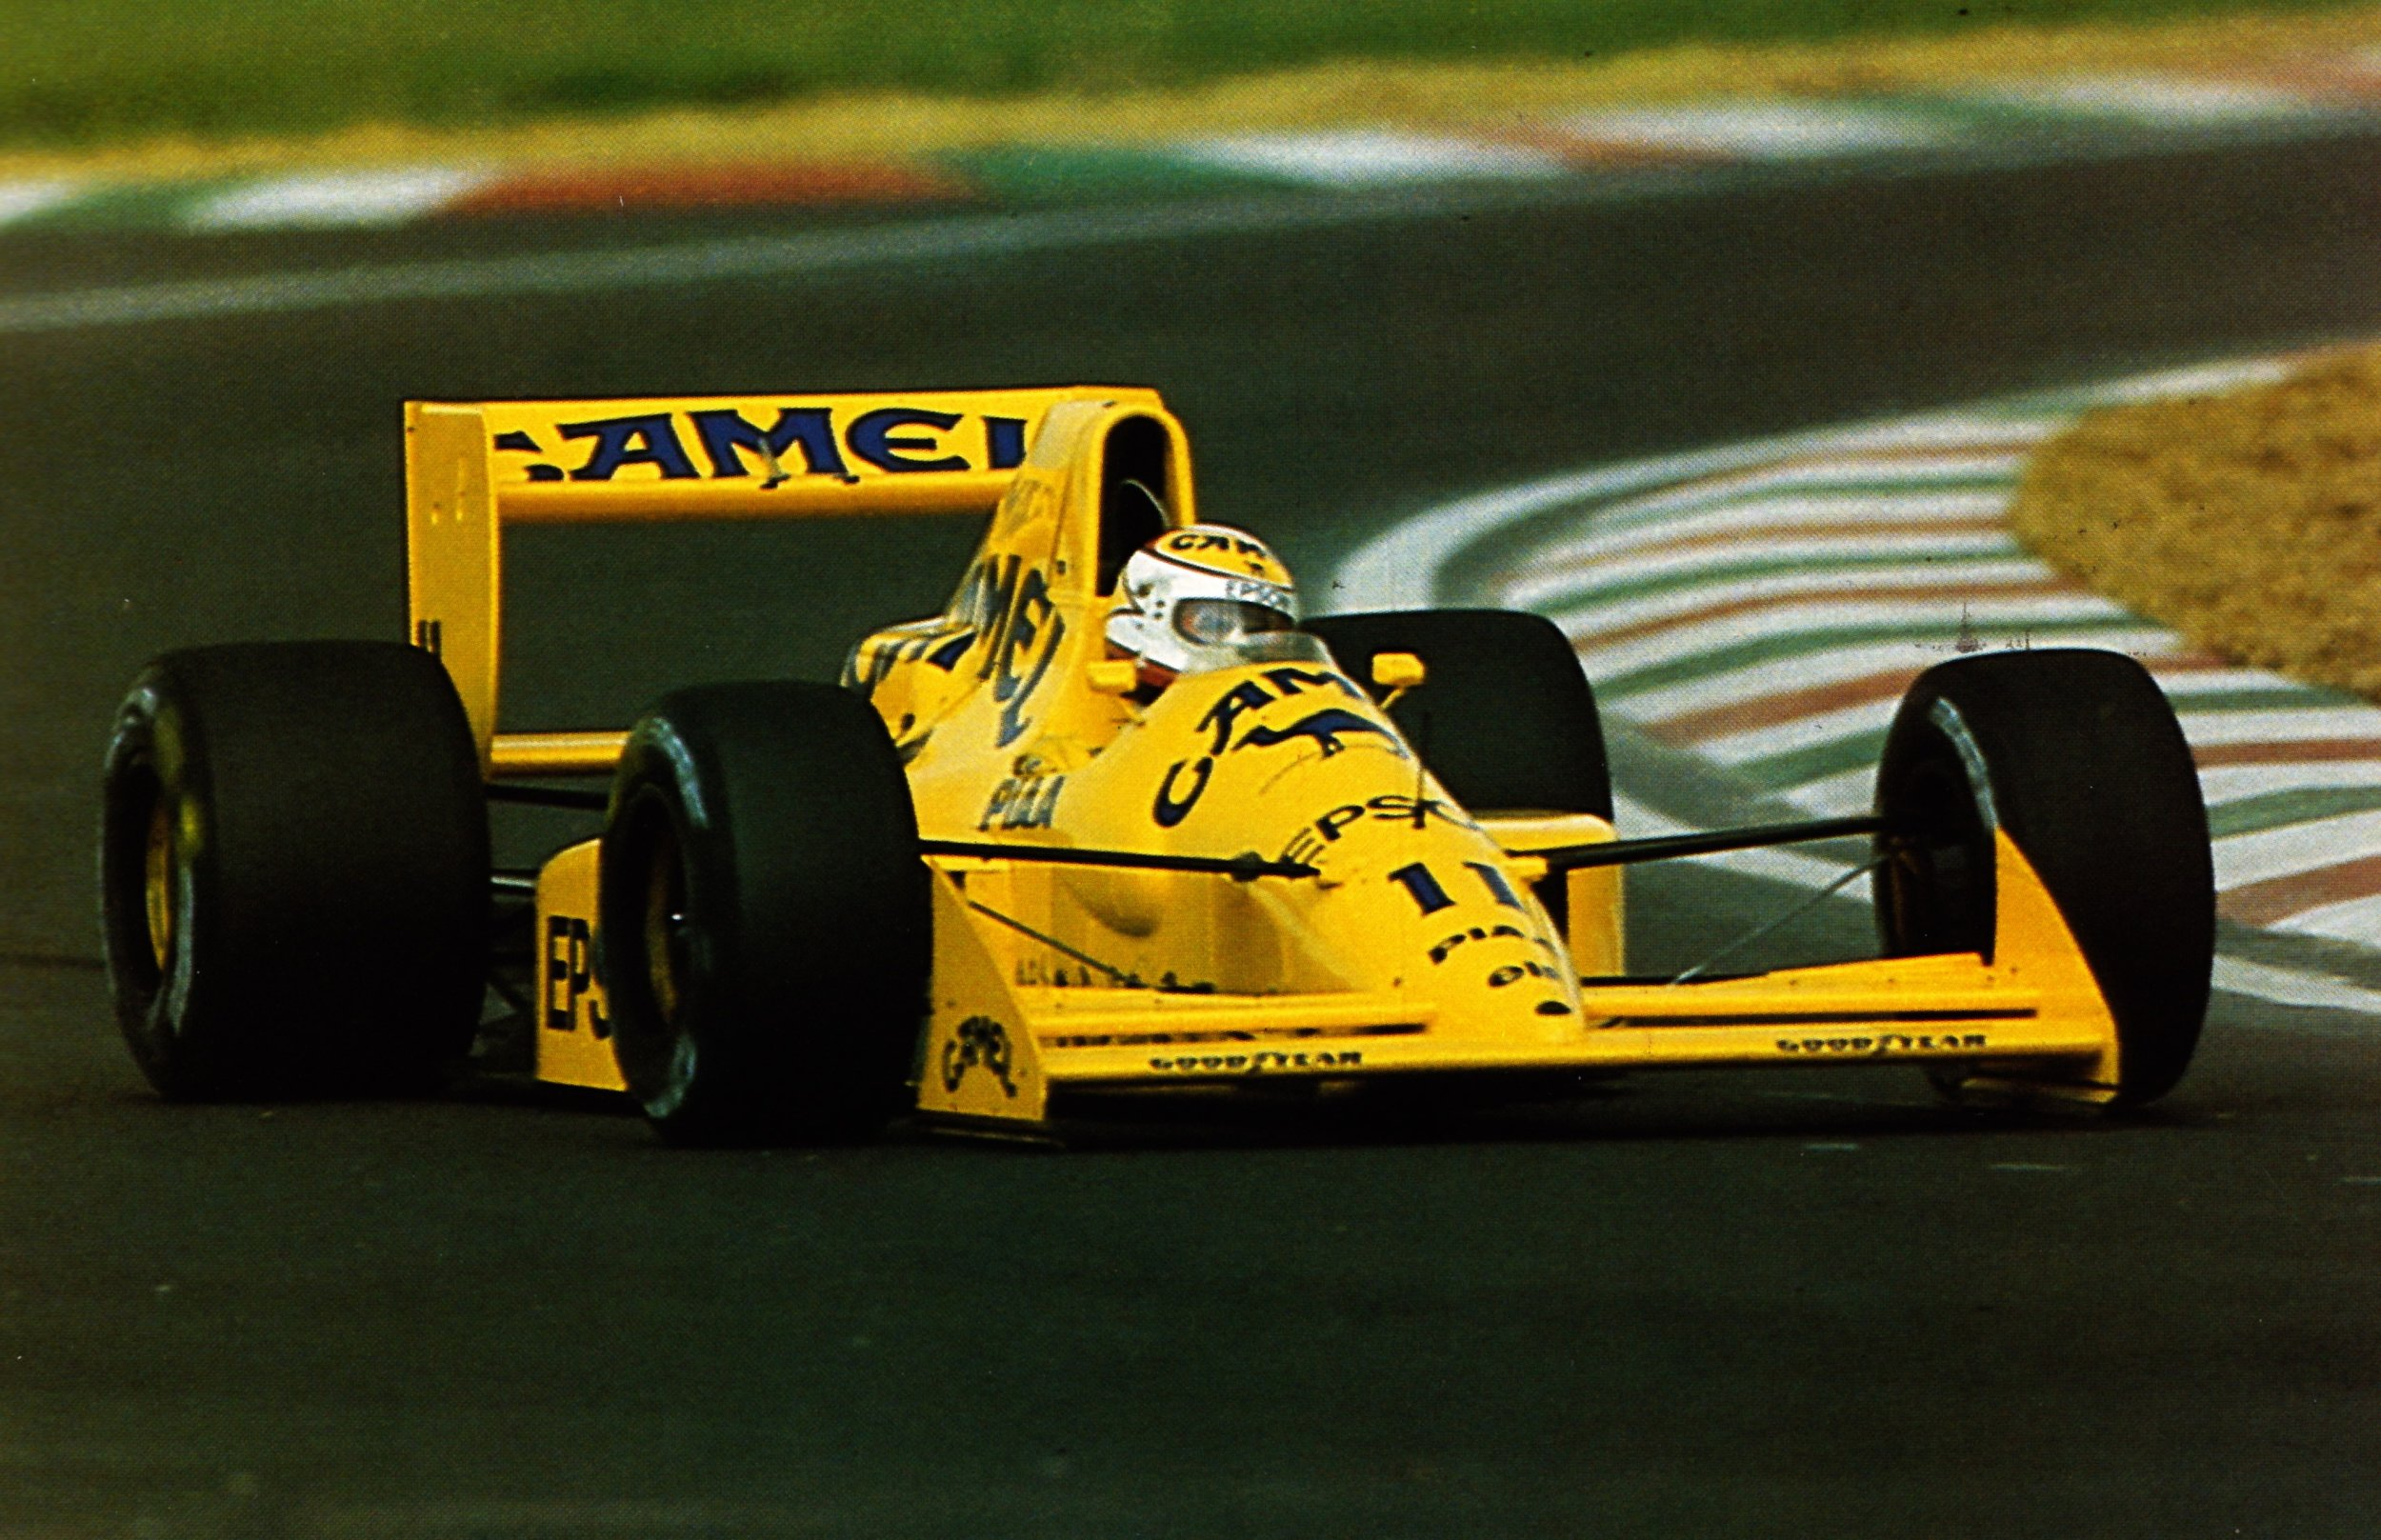 The Judd-powered 101 represented Lotus' difficulty in adapting to the 3.5L formula.